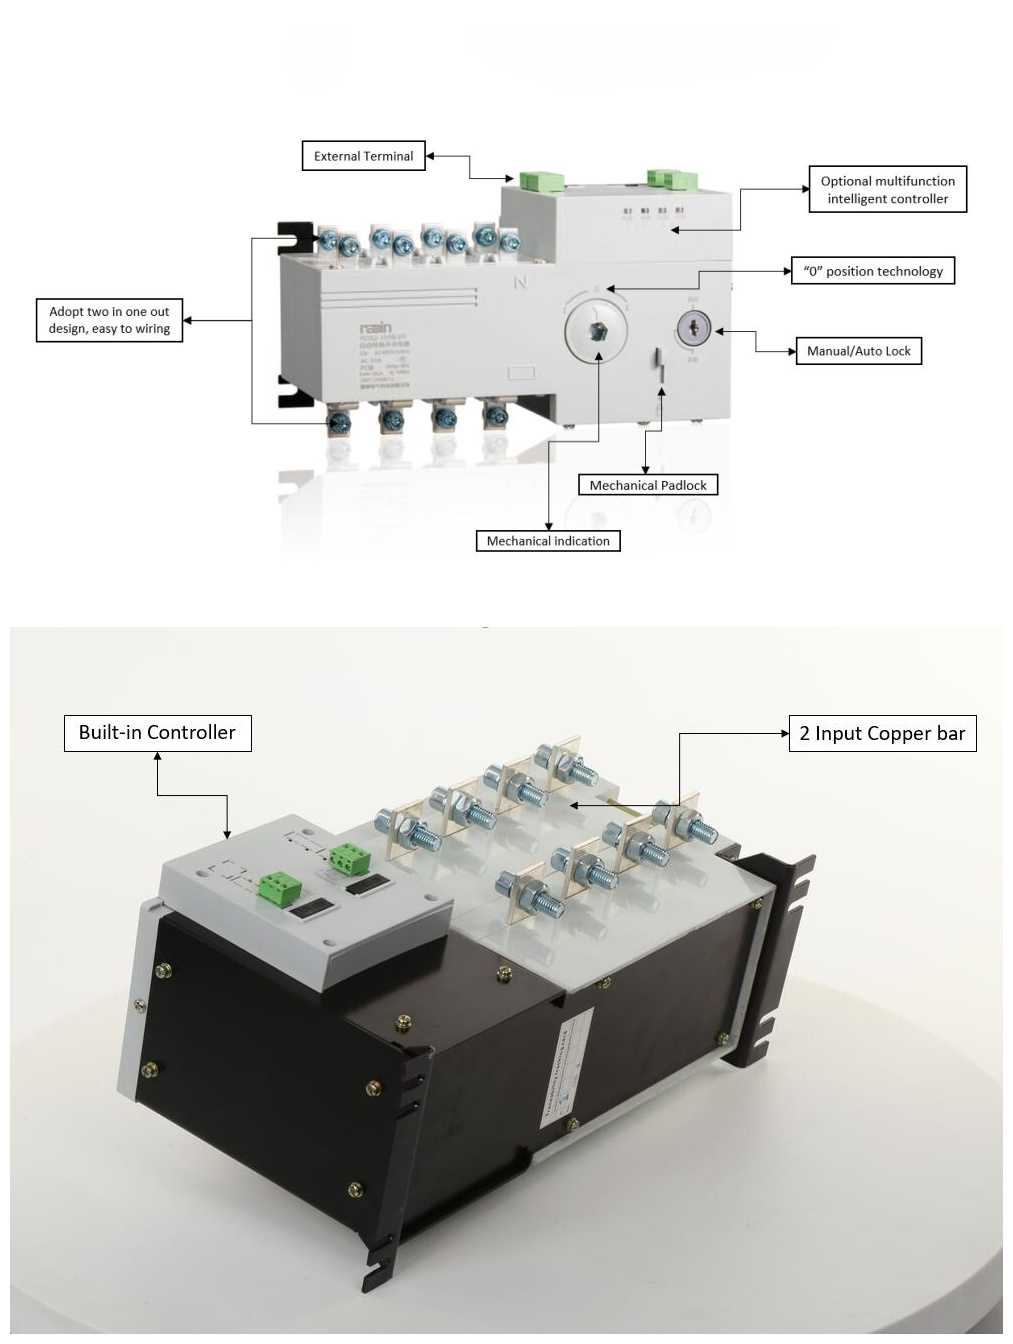 Cutler Hammer Automatic Transfer Switch Wiring Diagram from image.made-in-china.com